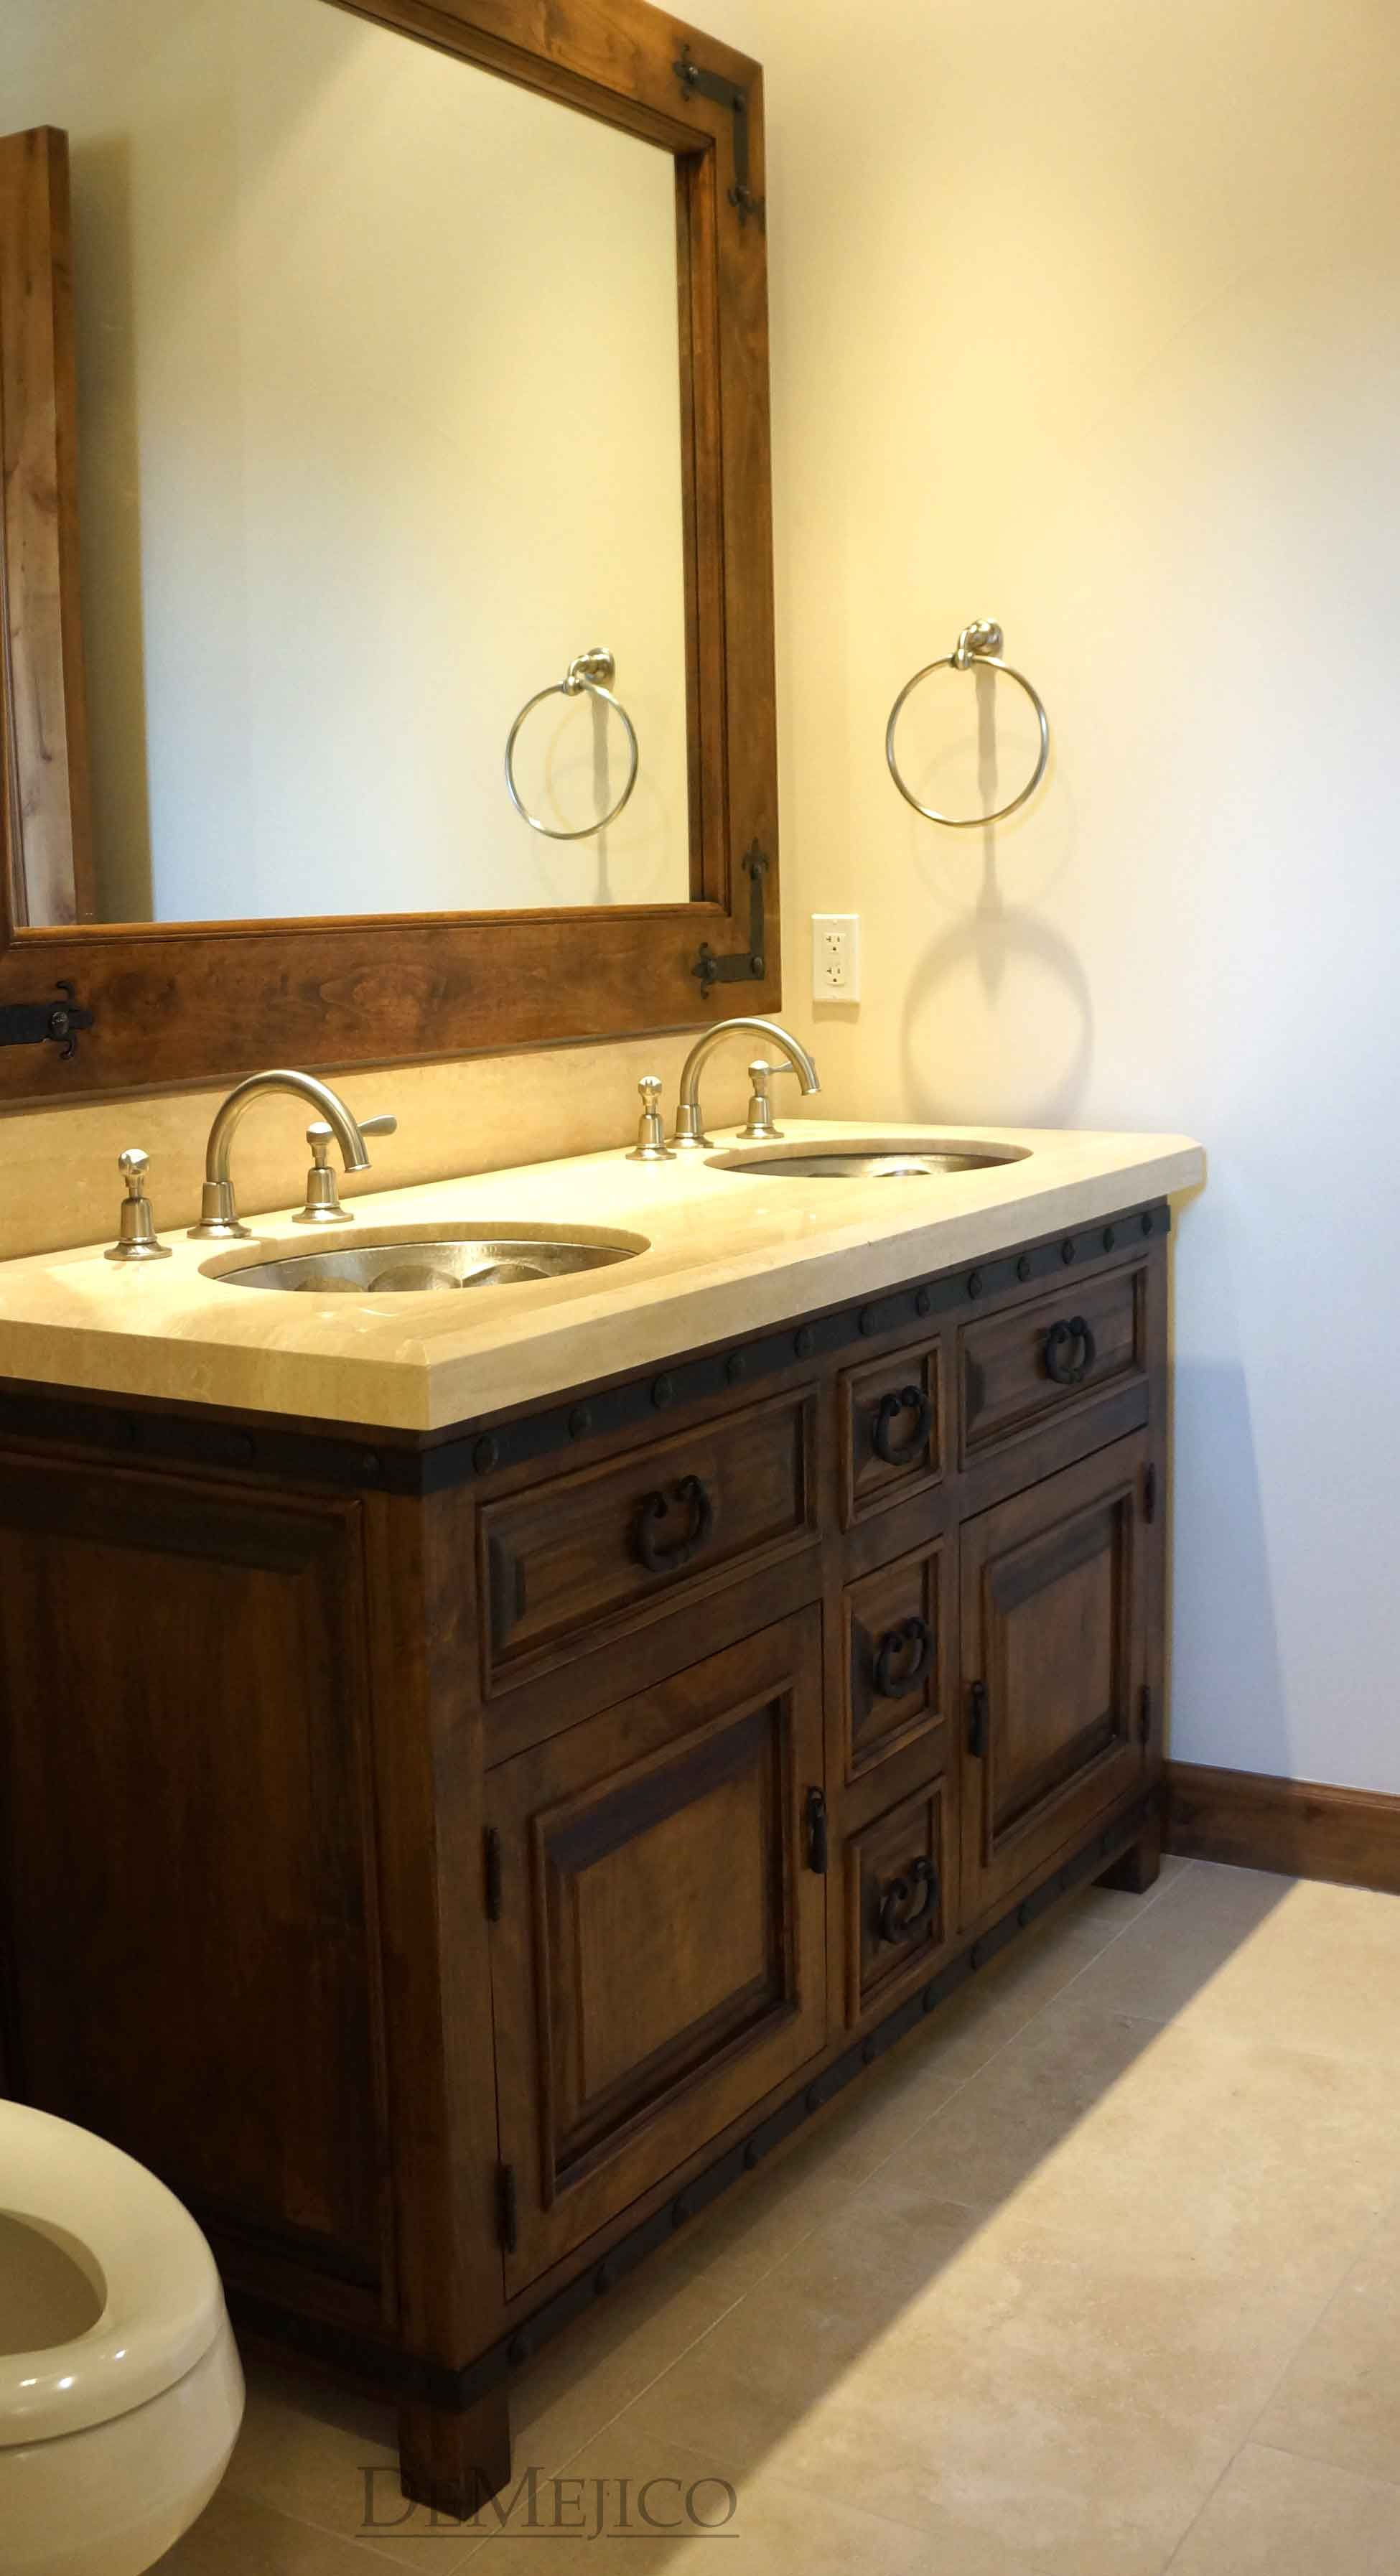 Alamo Style Bathroom Double Sink Vanity And Mirror Hand Carved From Alder Wood With A